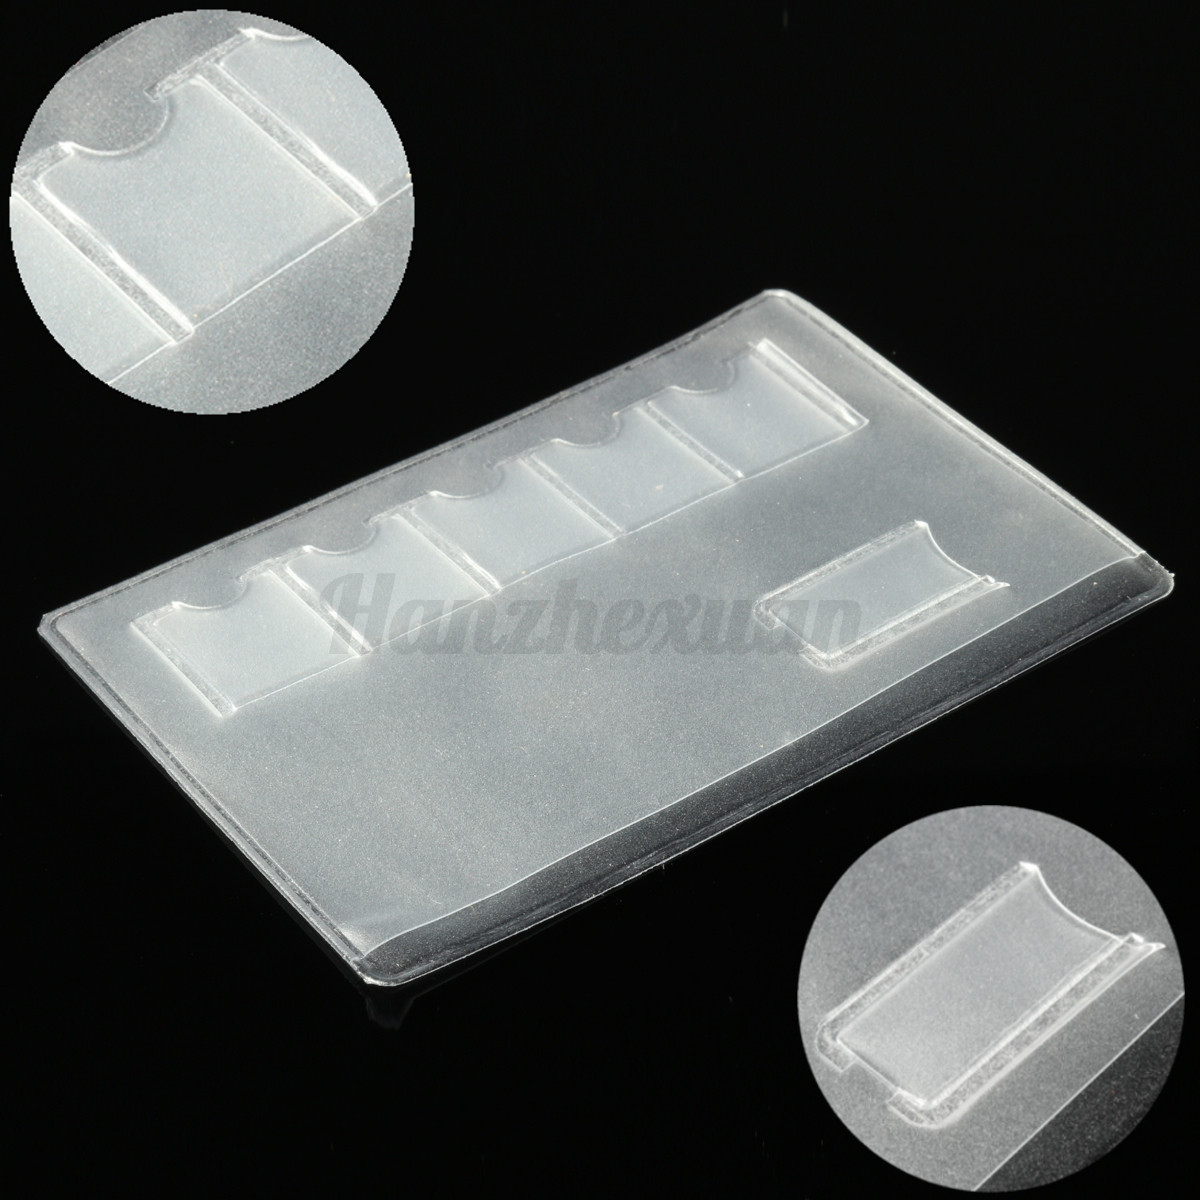 SIM Card Storage Case For Nano & iPhone Eject Pin Credit Card Holder  !